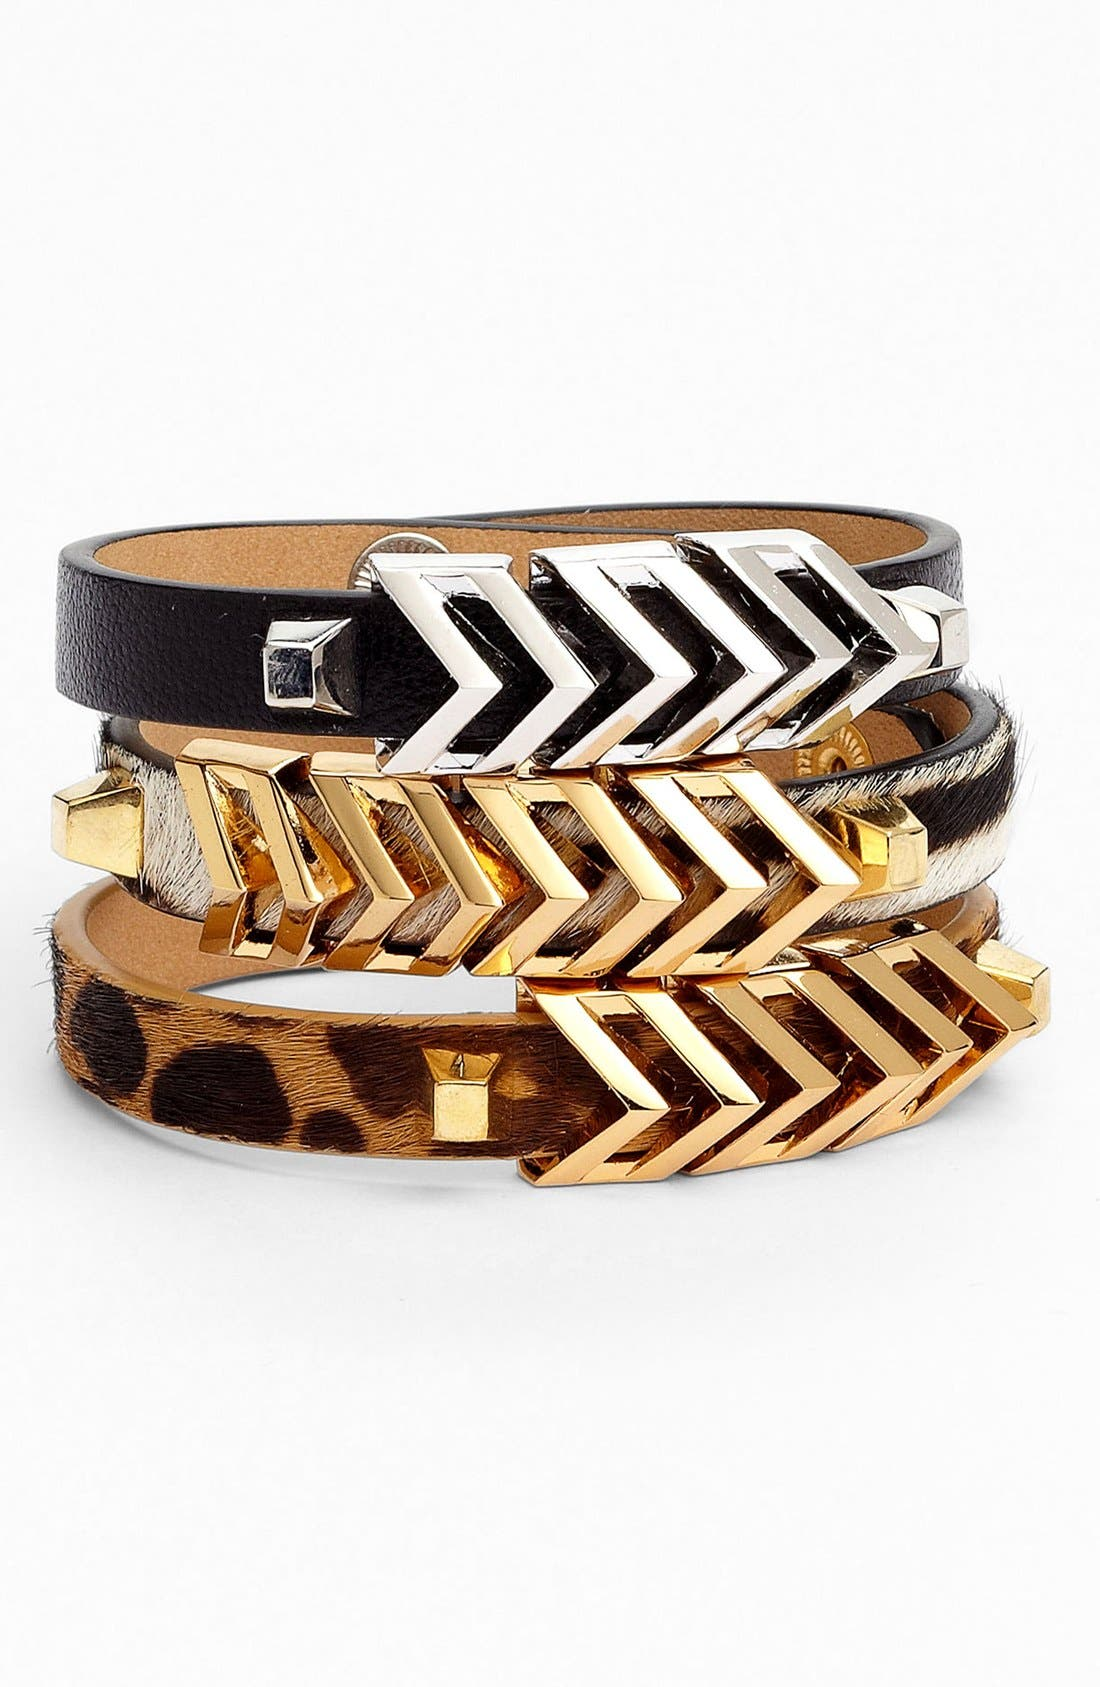 Main Image - Vince Camuto 'Call of the Wild' Chevron Bracelet (Nordstrom Exclusive)